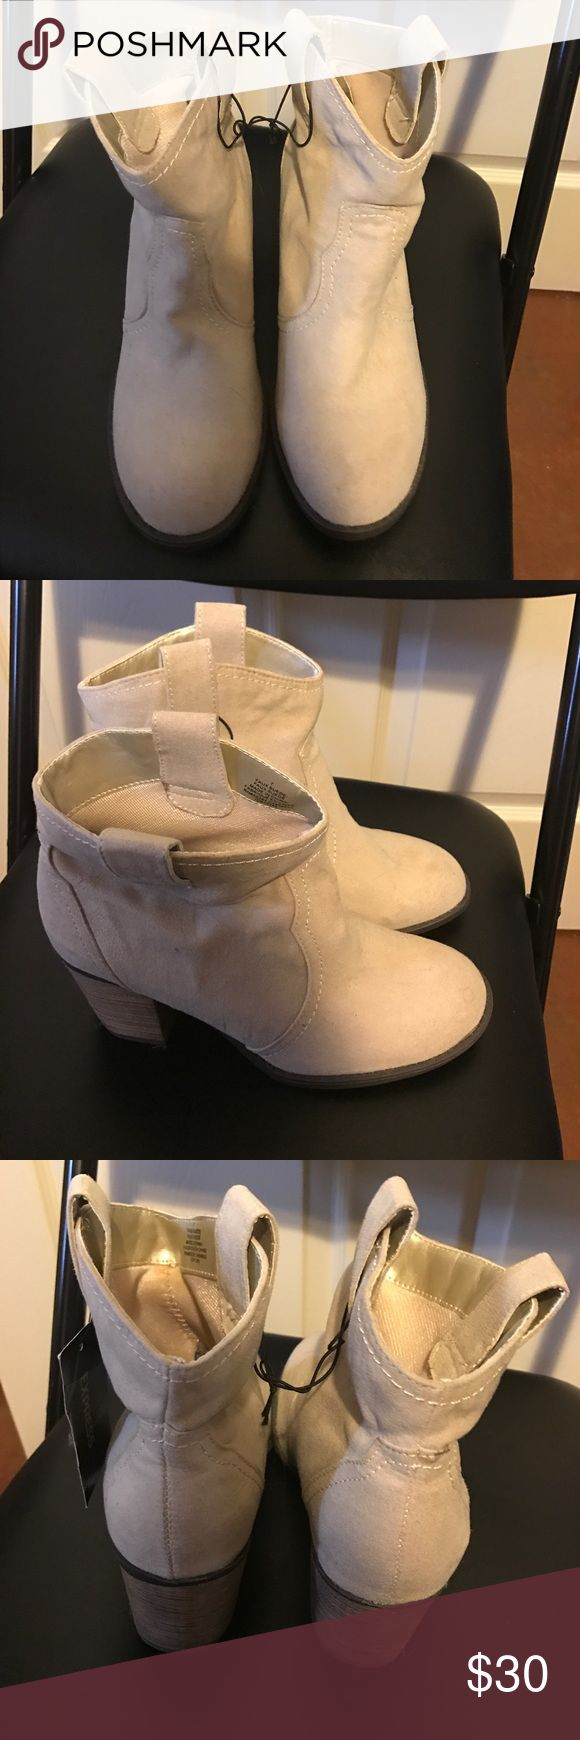 Express beige boots Brand new with tags. Very cute and true to size Express Shoes Ankle Boots & Booties